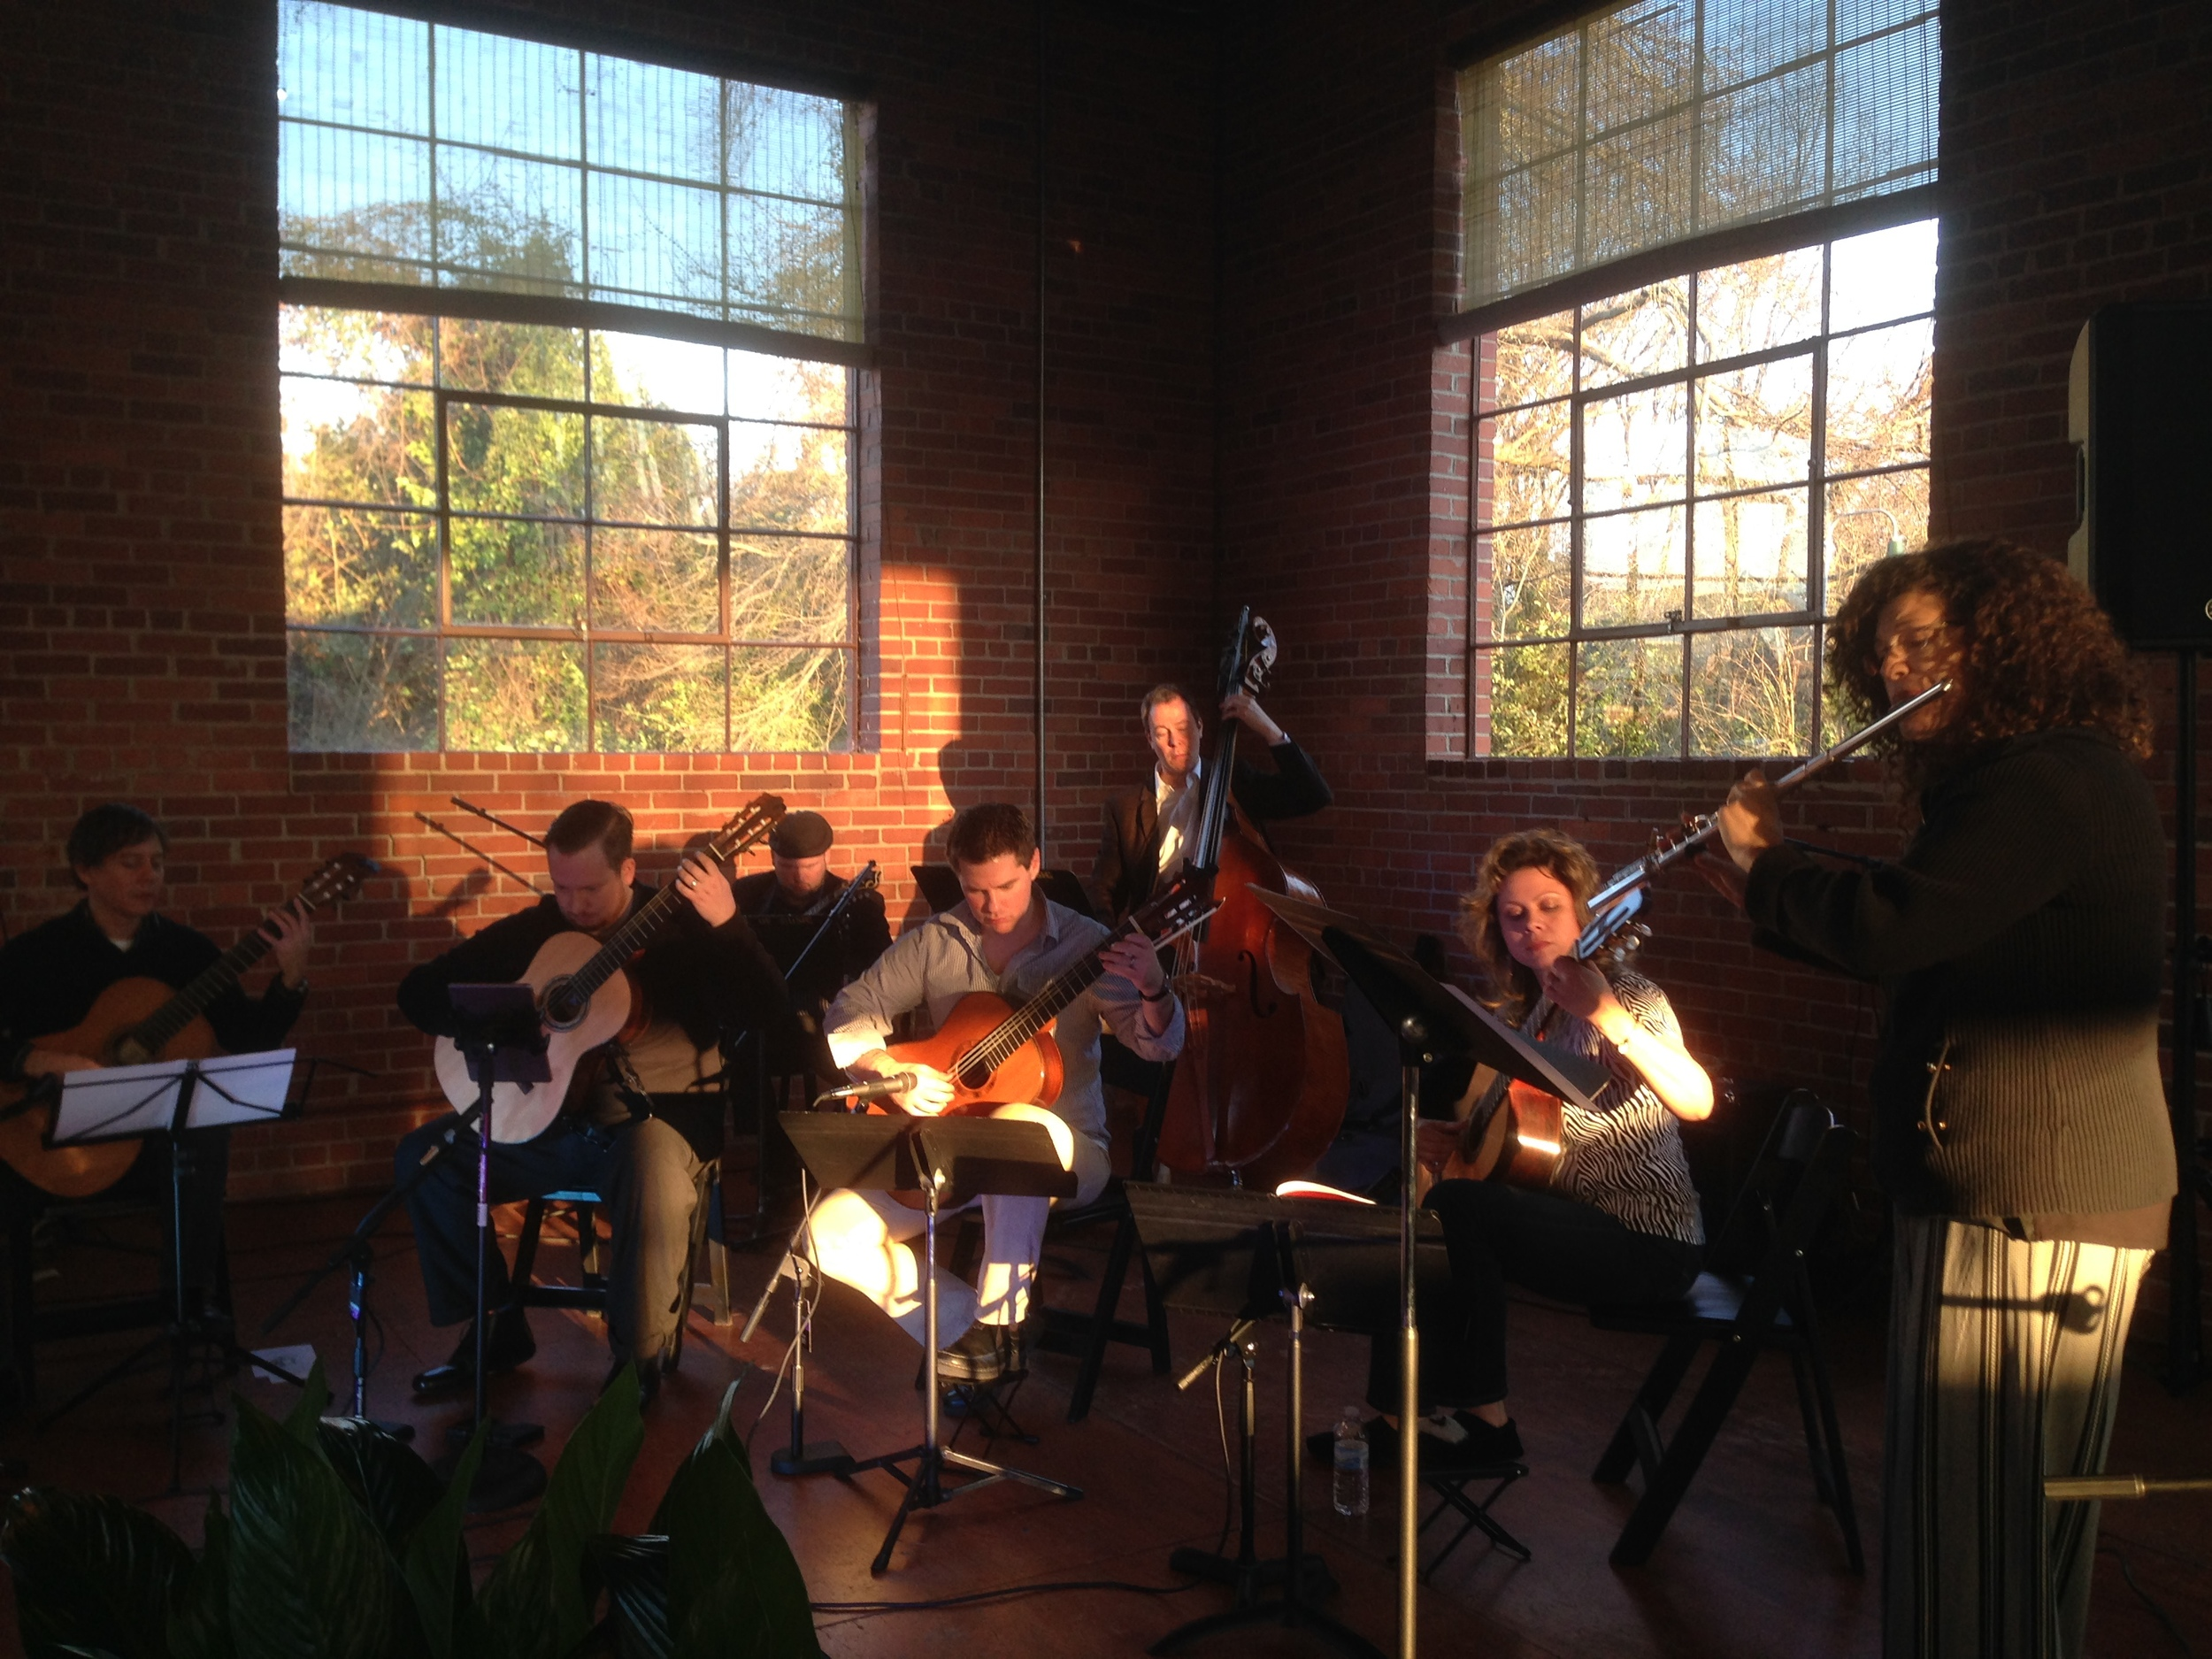 Pre concert rehearsal with some very cool sunset lighting!